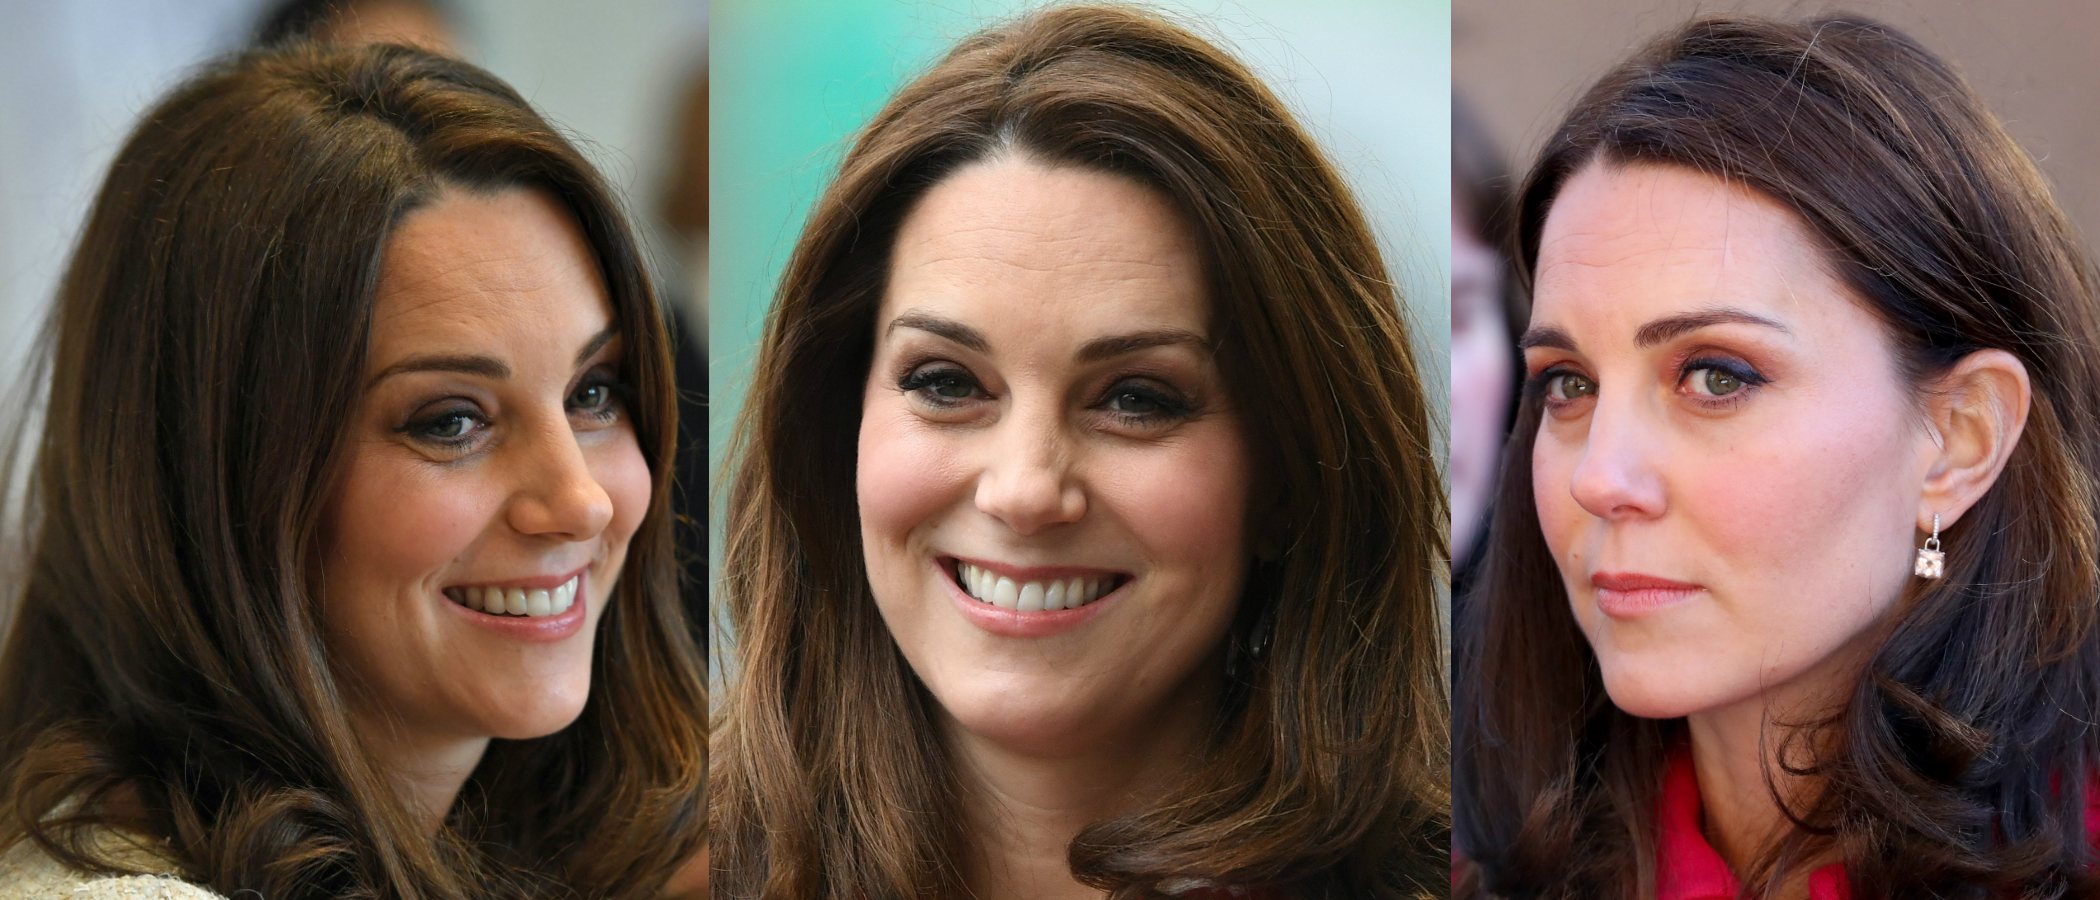 Maquíllate como Kate Middleton